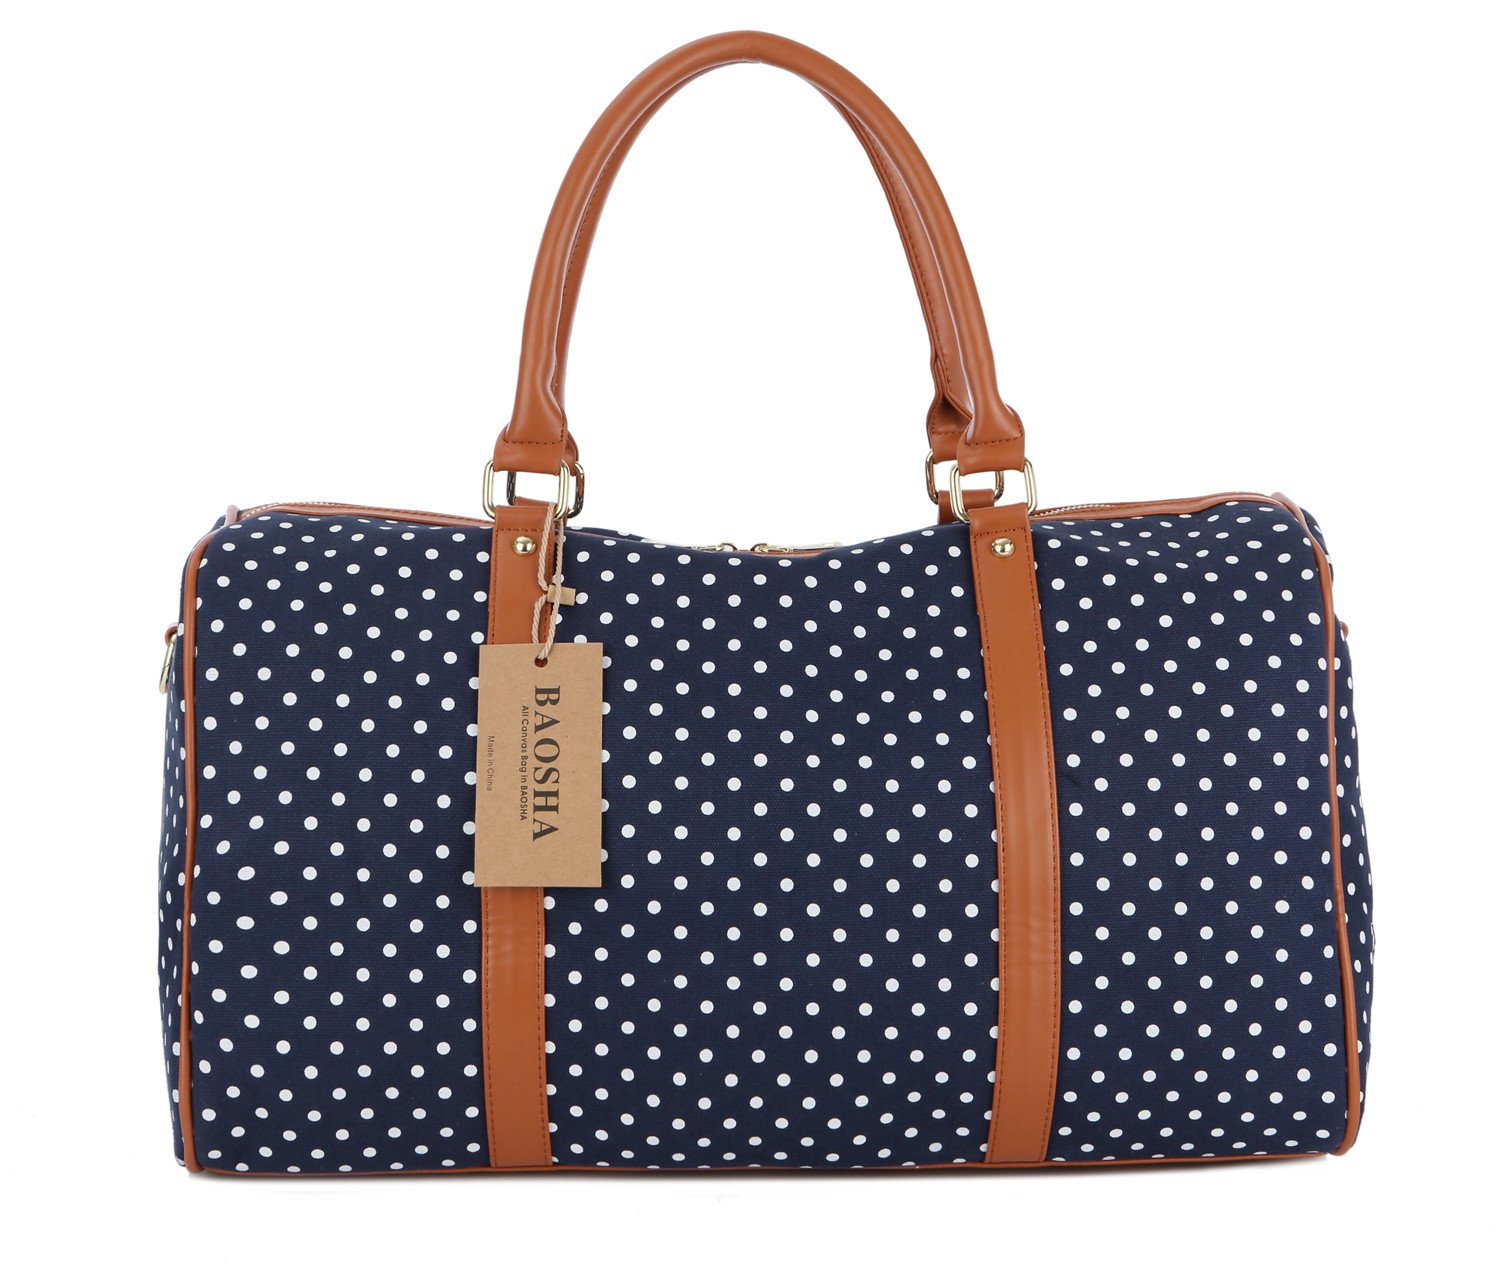 2cf7244428e2 Details about BAOSHA HB-25 Cute Lady Women Canvas Travel Bag Weekender  Overnight Bag Carry-on